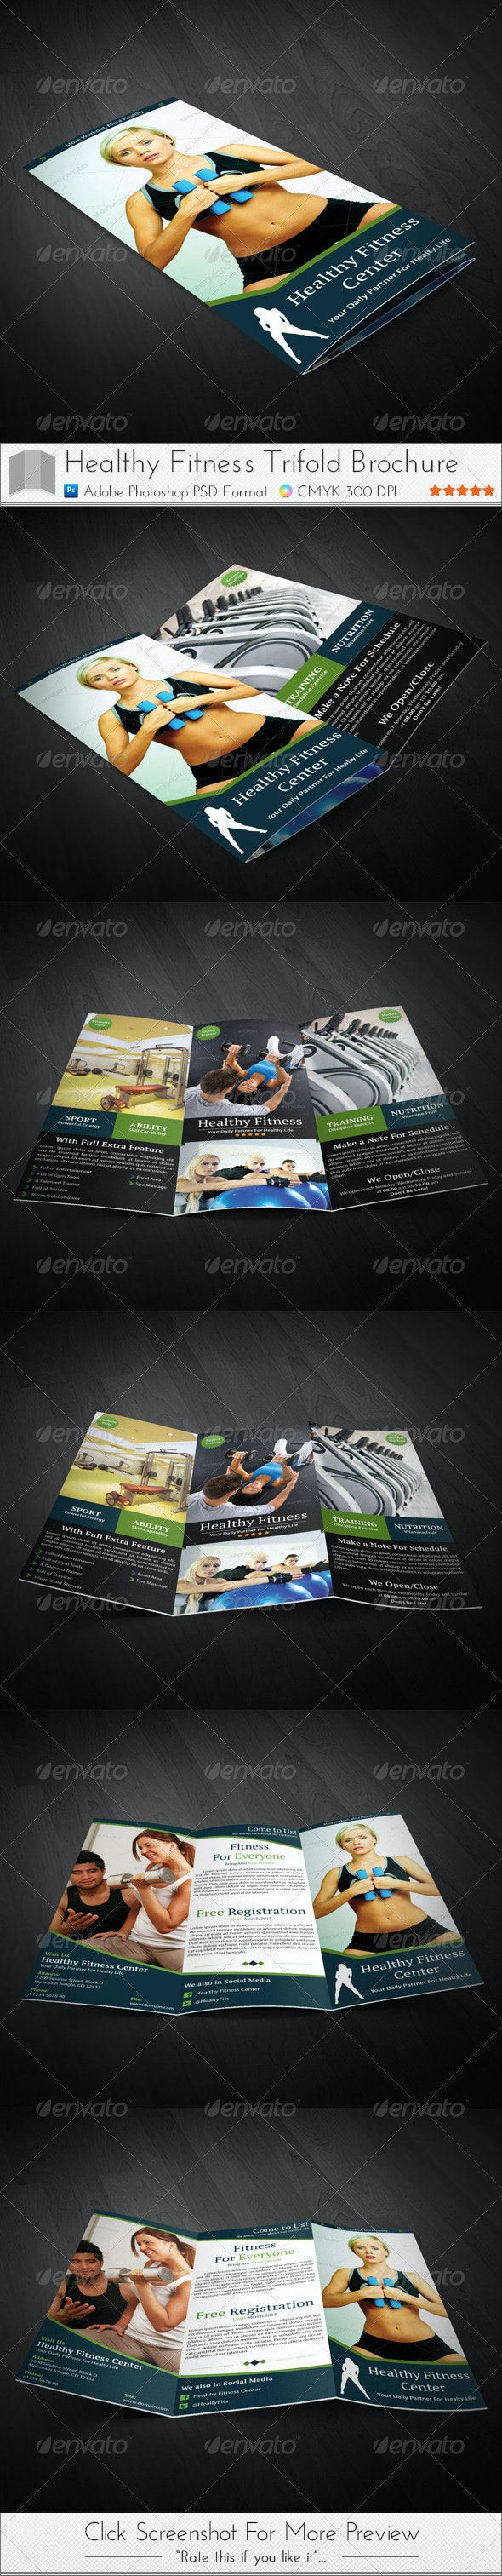 Healthy Fitness Trifold Brochures - Brochures Print Templates